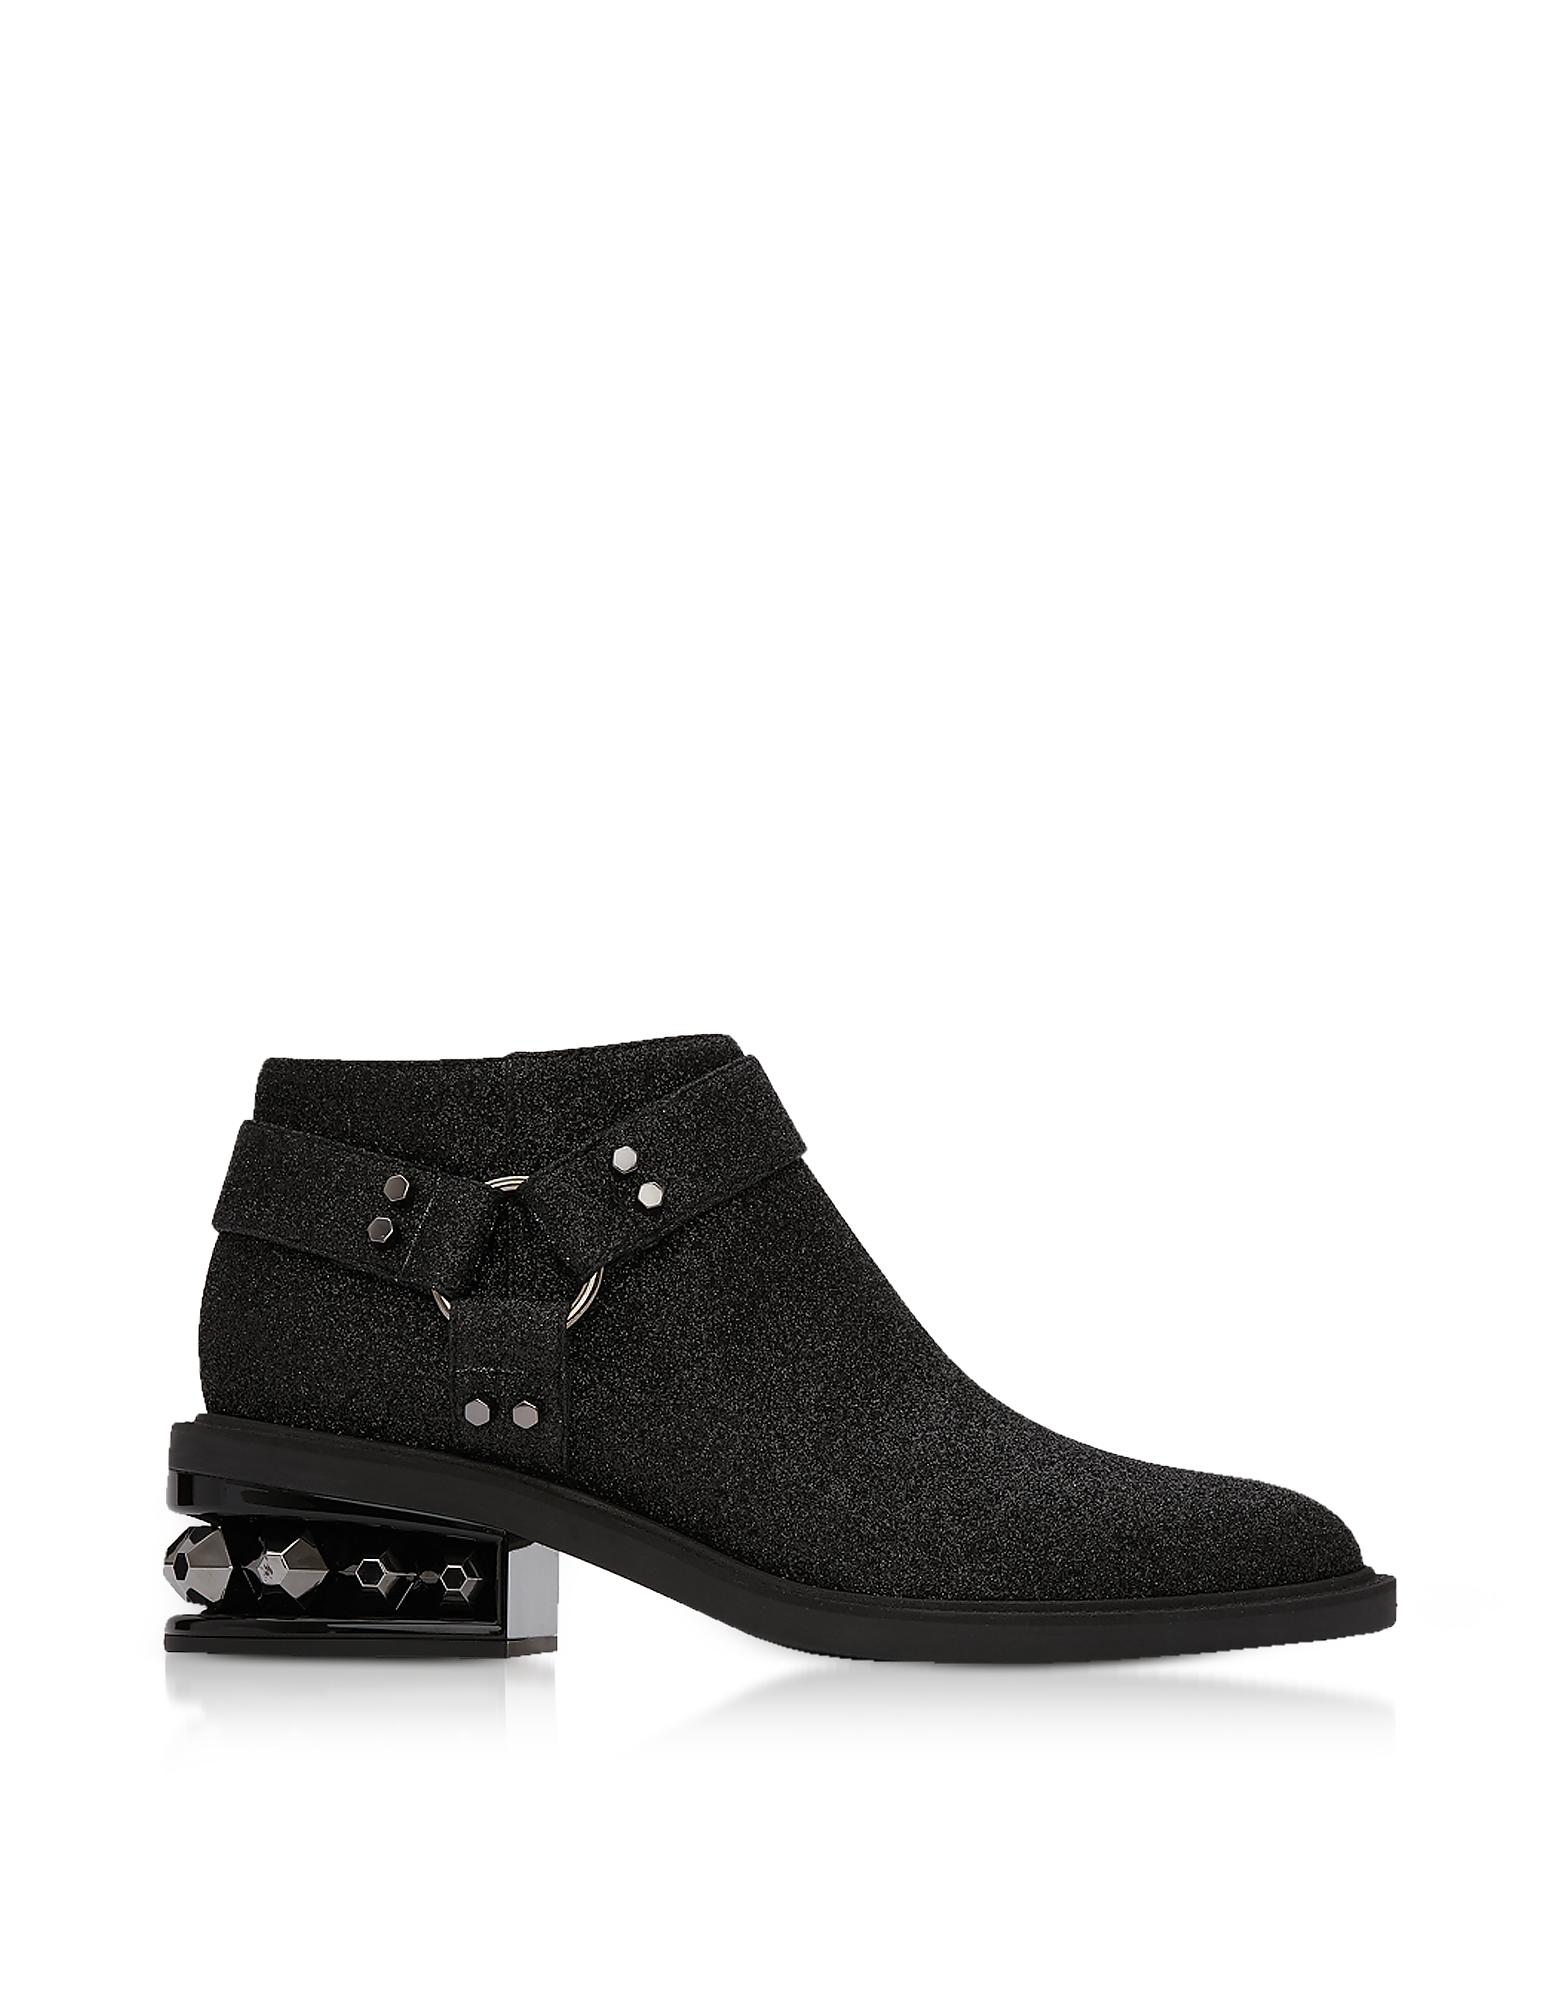 Nicholas Kirkwood Designer Shoes, Black Glitter Textured Canvas and Leather 35mm Suzi Low Biker Boots